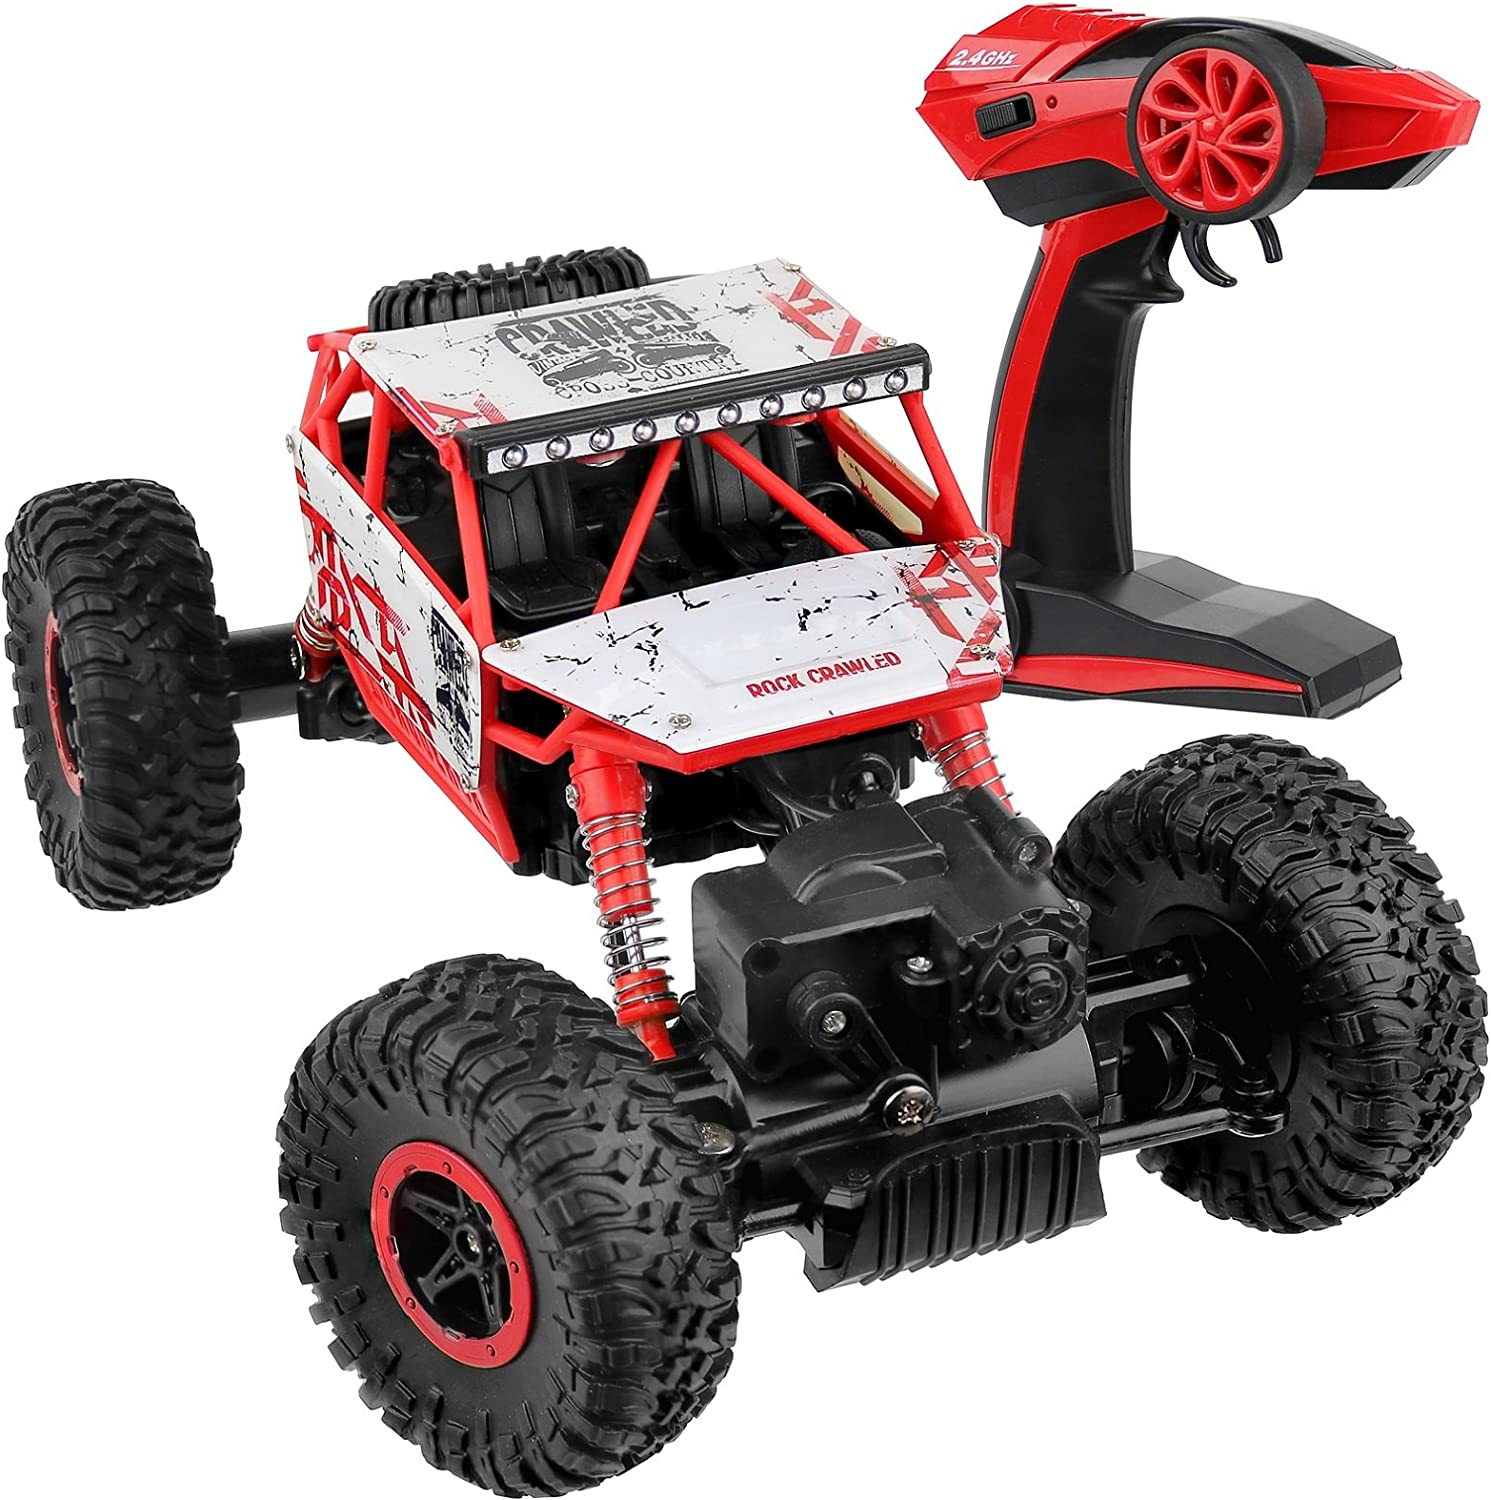 Top 10 Best RC Cars for Kids Reviews in 2020 2